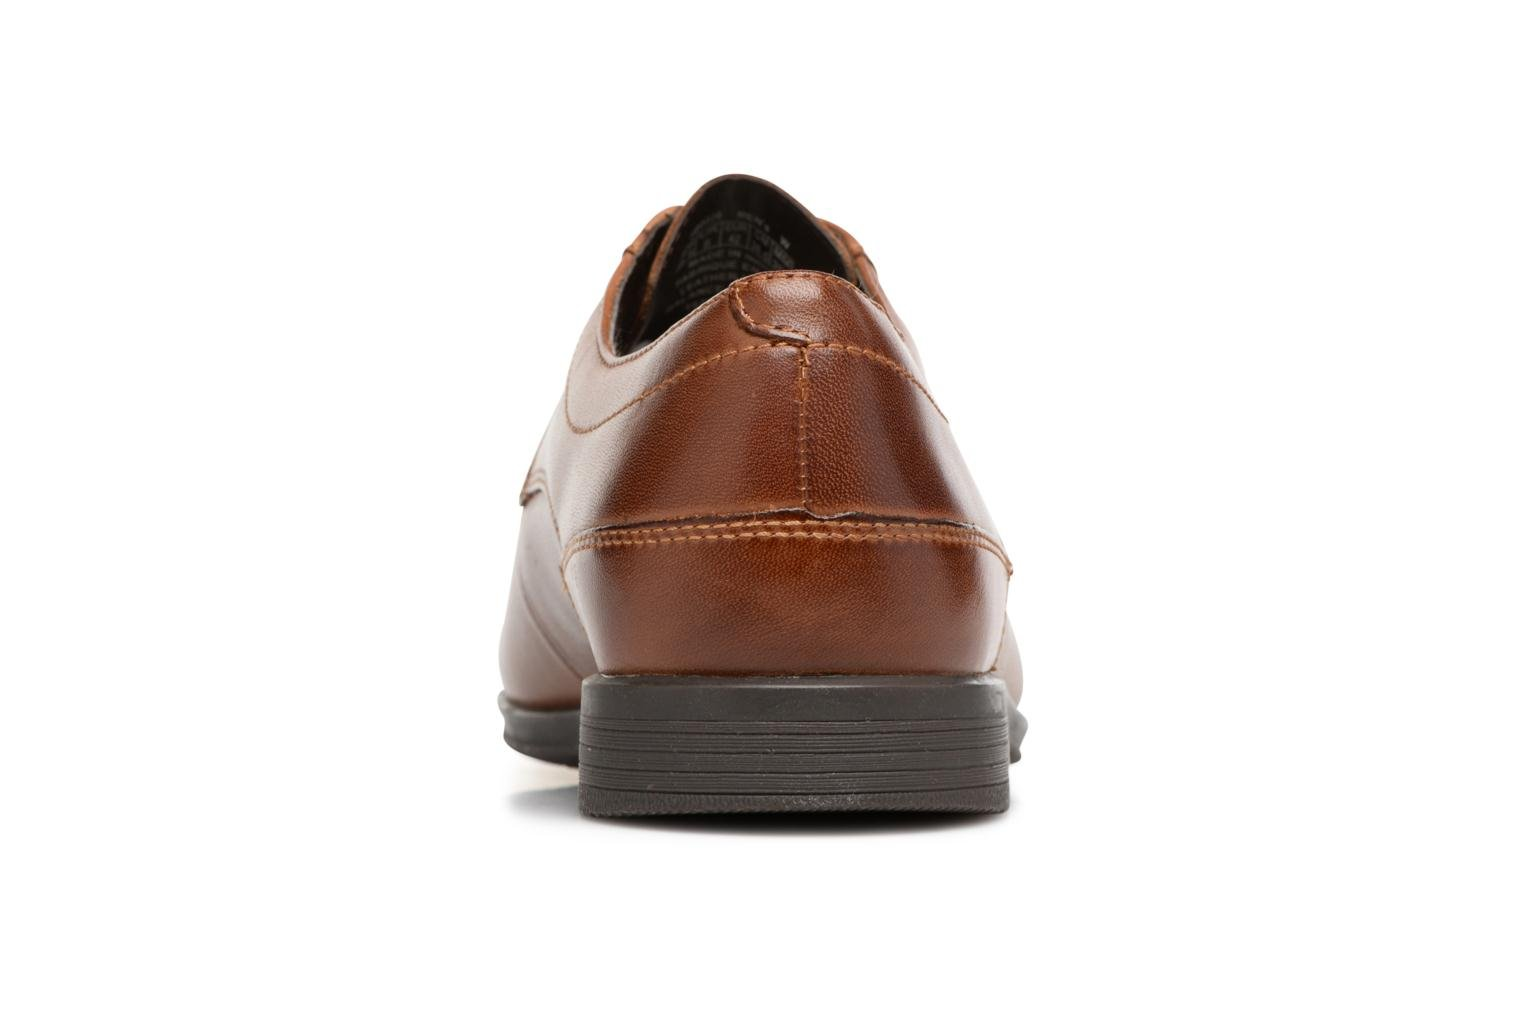 Sc Plain Toe Brown leather